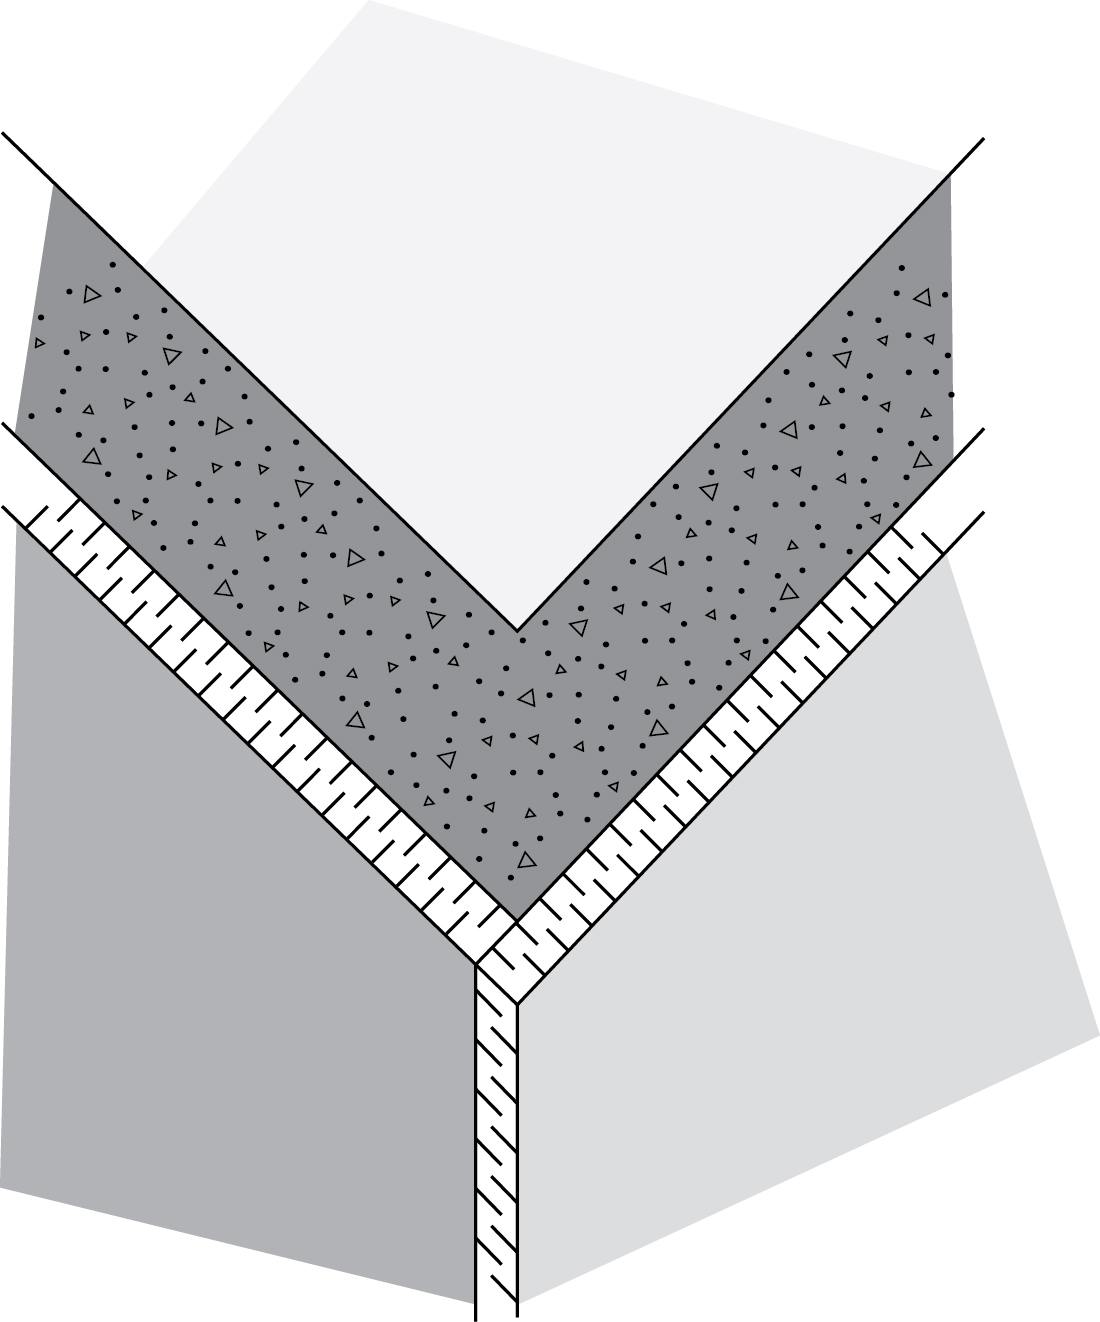 Figure 6-6 The insulation should overlap at corners